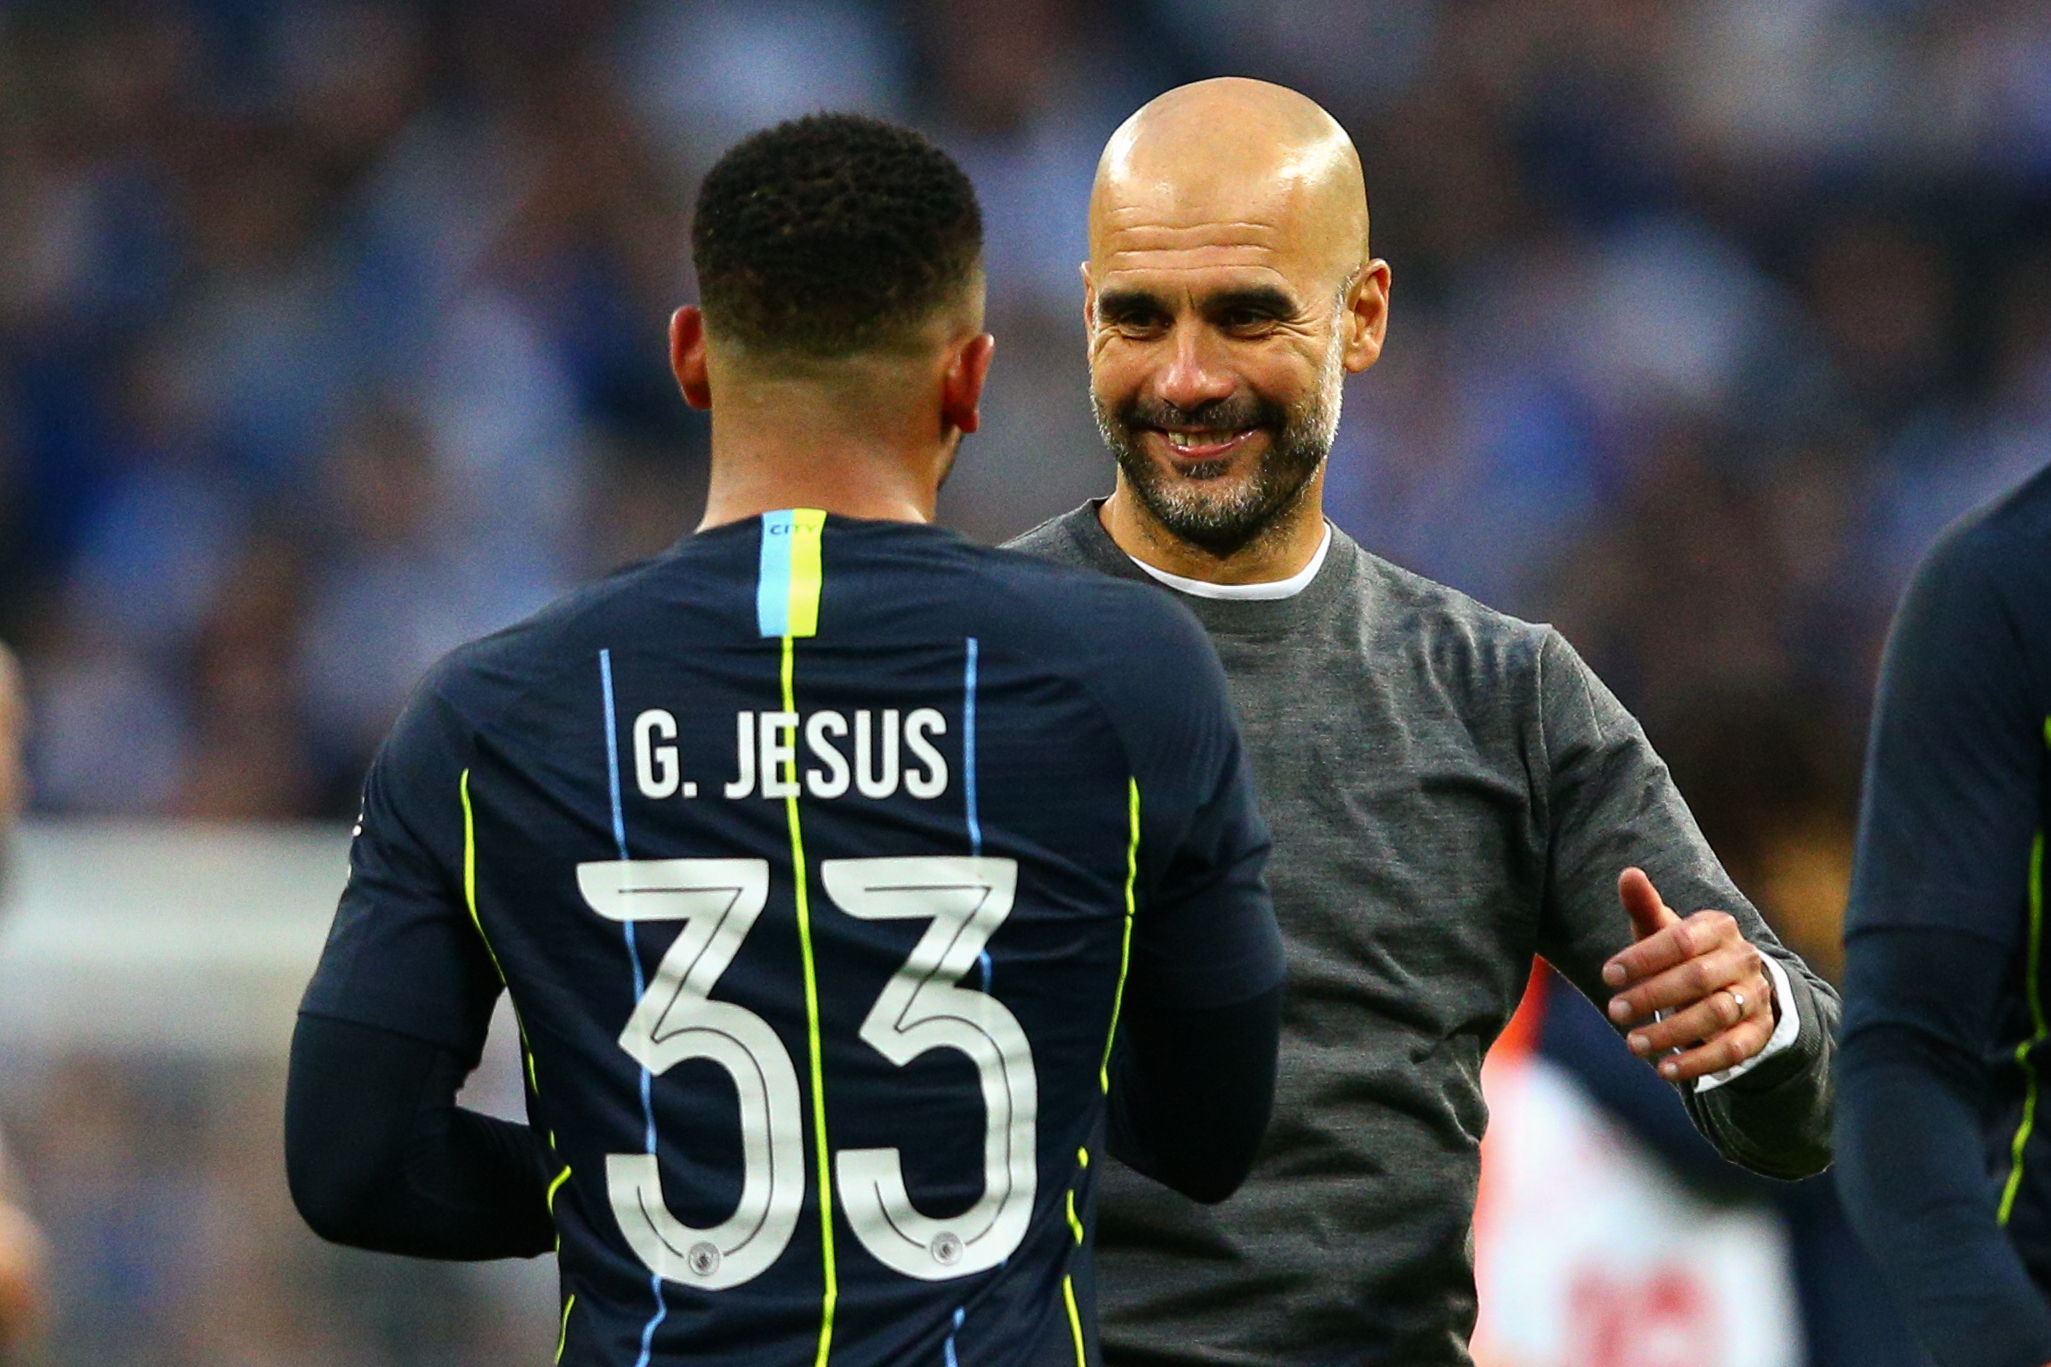 gabriel jesus 039 s solitary early goal was enough as city failed to hit top gear against the seagulls but still stretched an incredible run to 22 wins in 23 games photo afp